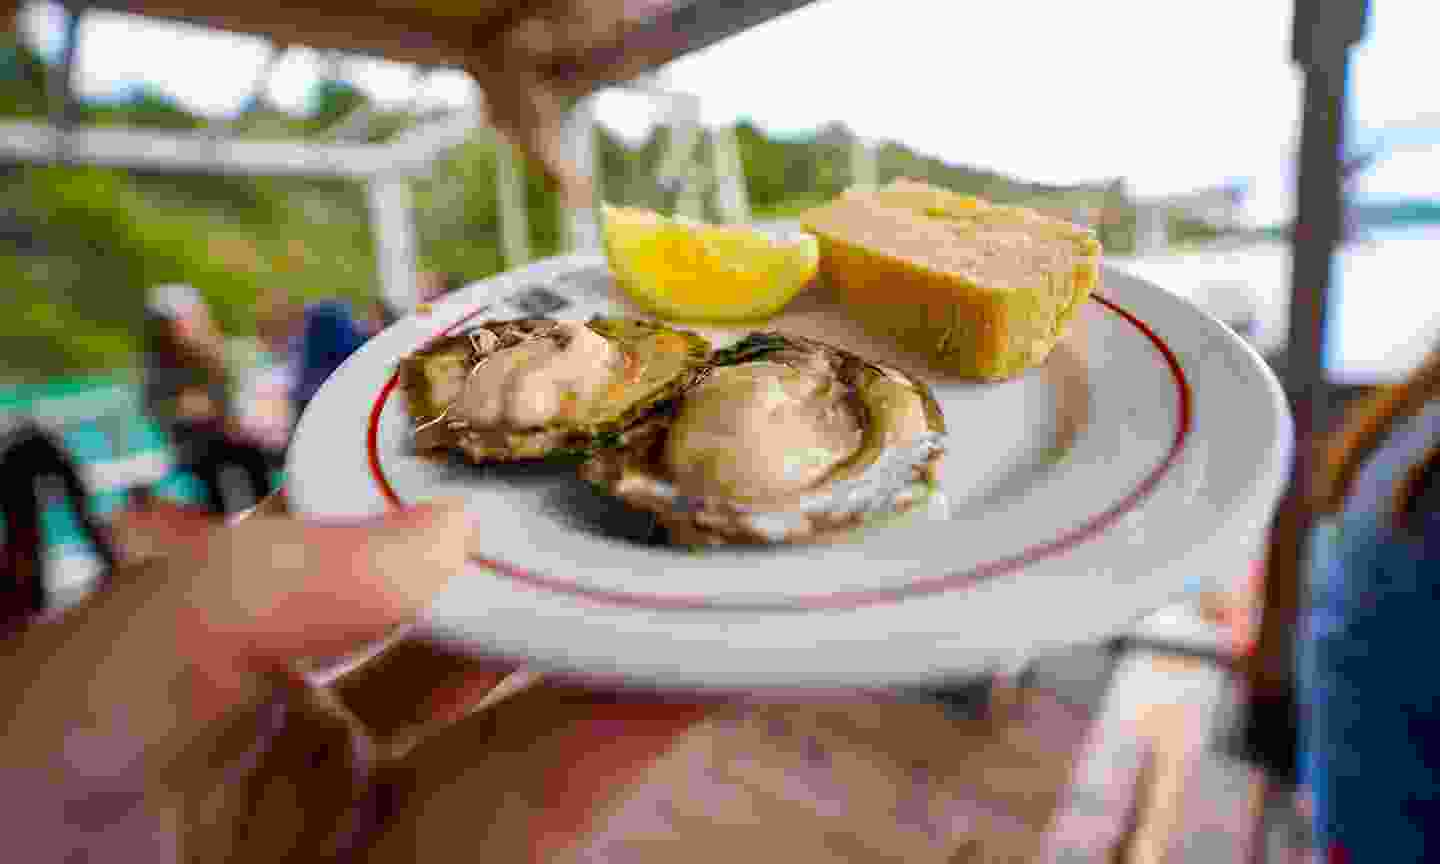 Fresh oyster in plate of bread and lemon at Mali Ston (Shutterstock)